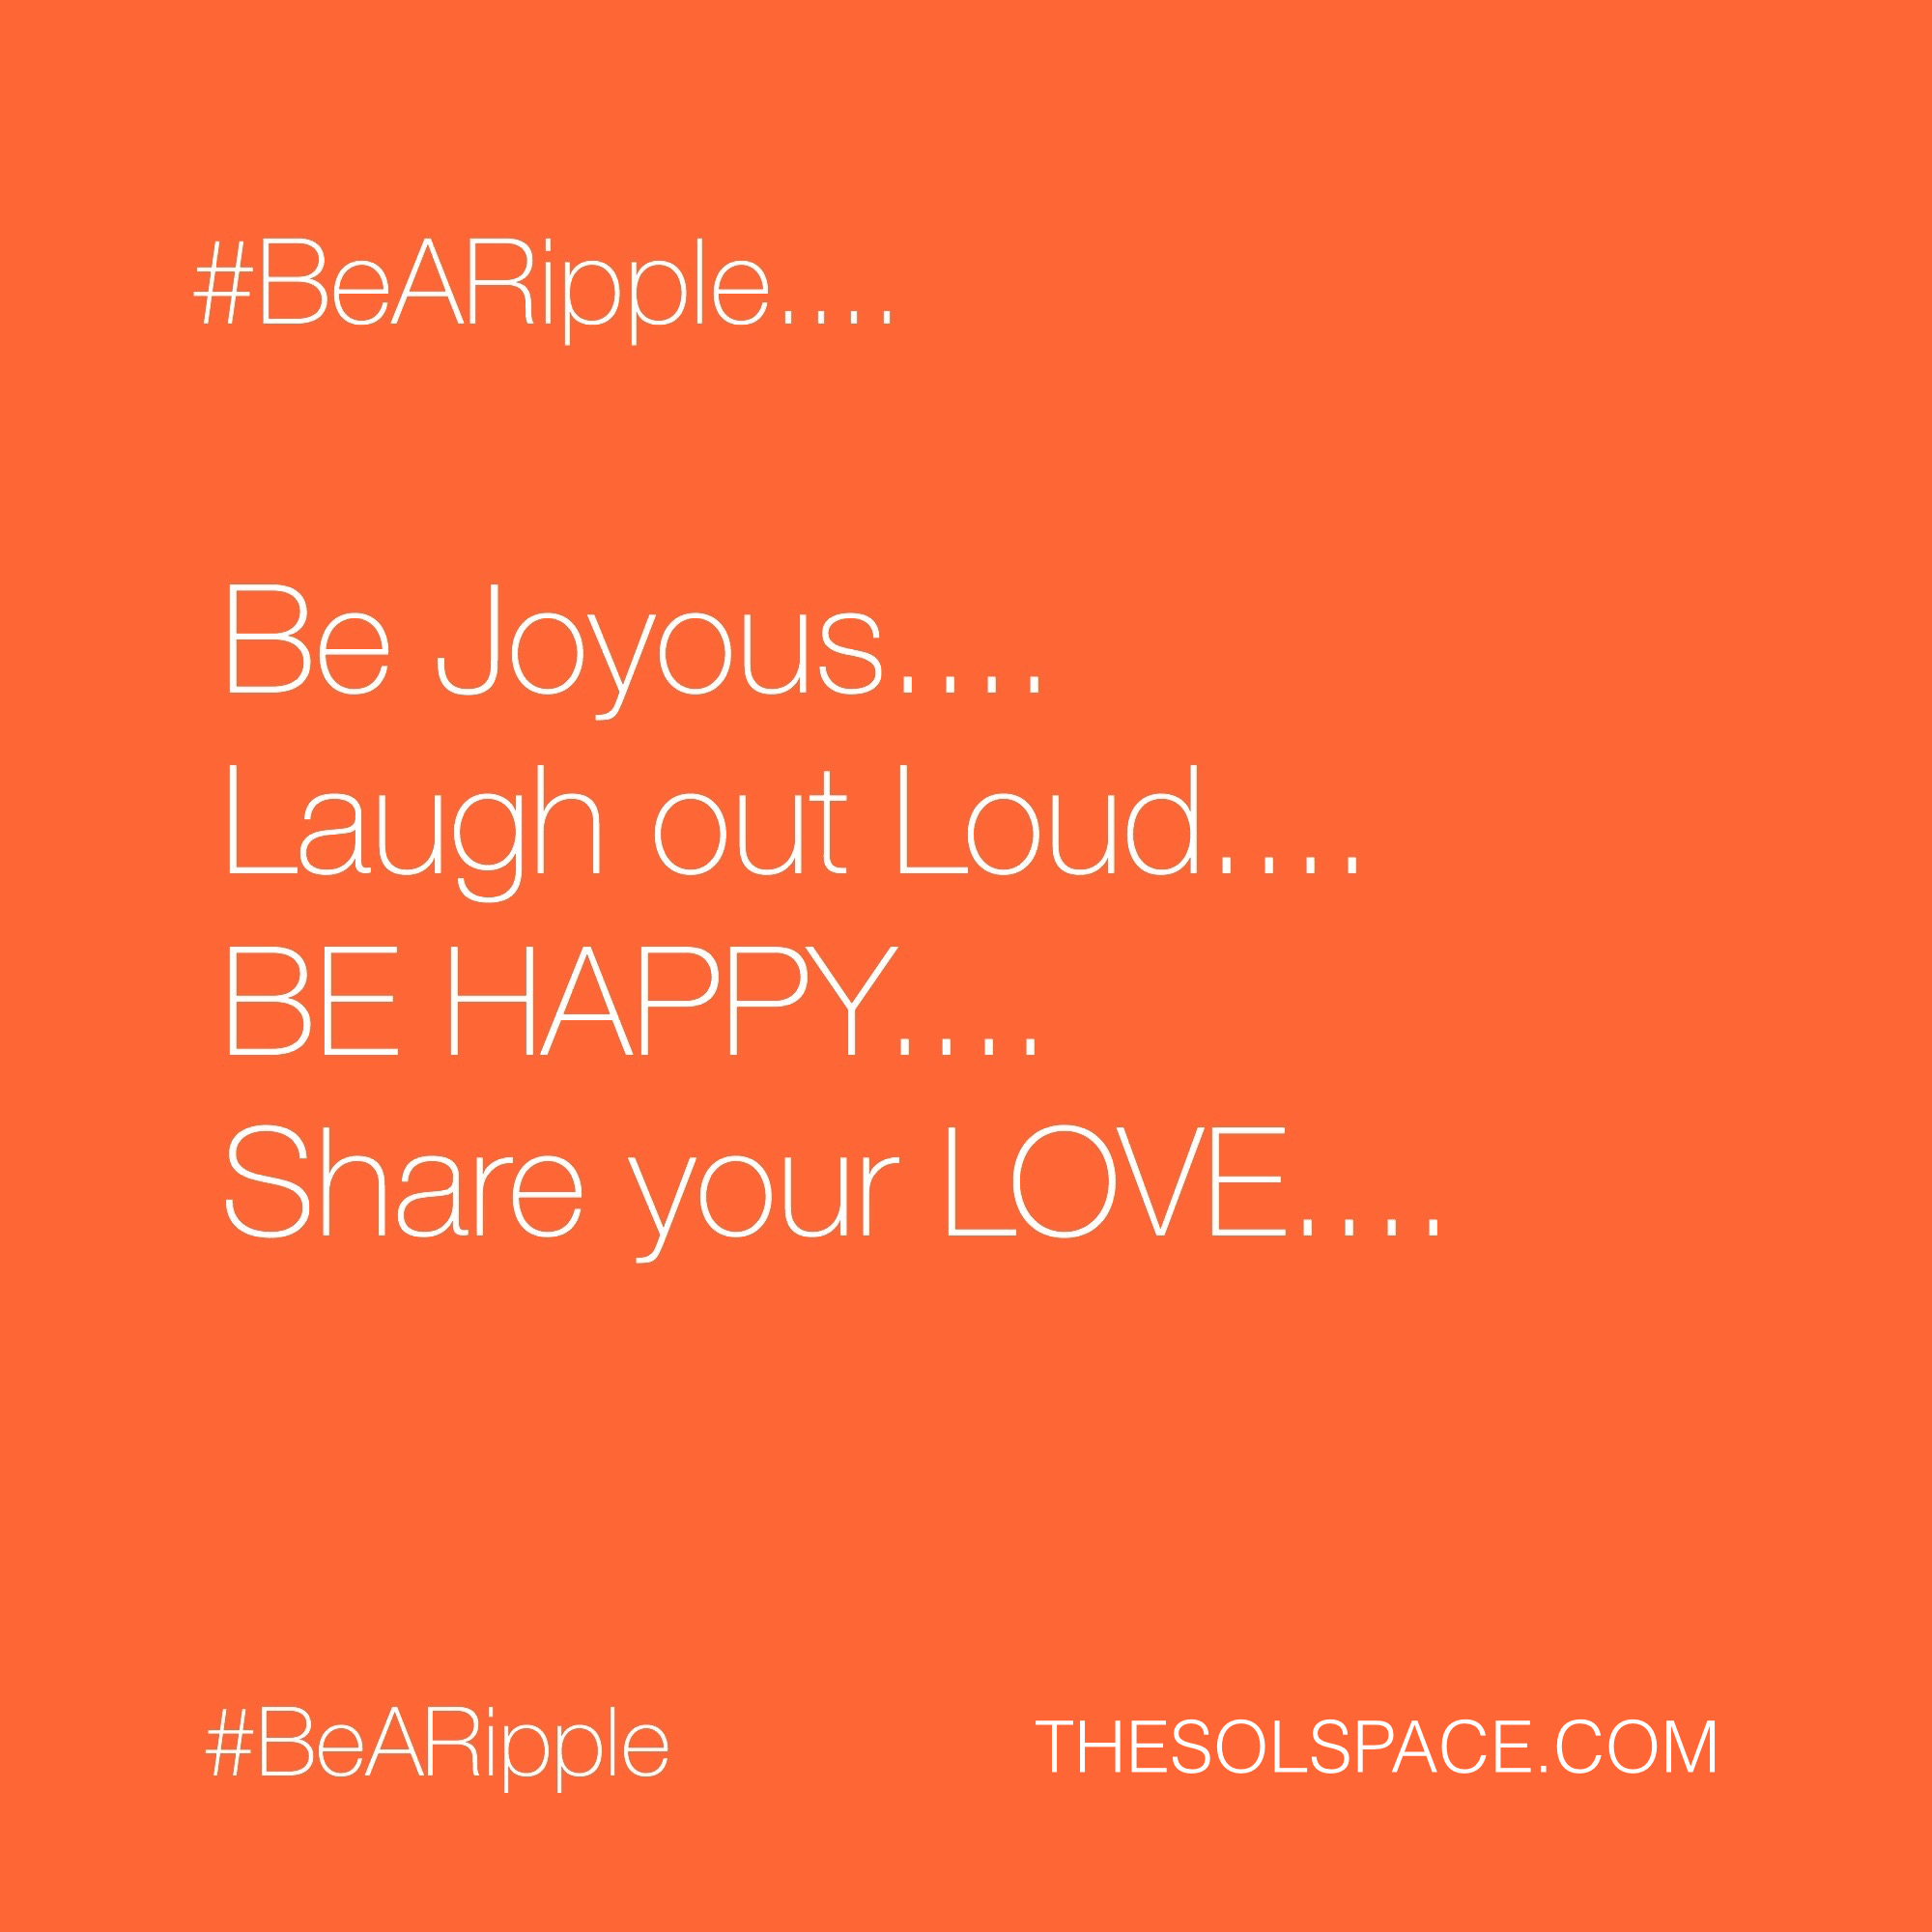 #BeARipple..Be Joyous..Laugh out loud..Be happy..Share your love.. @theSOLspace